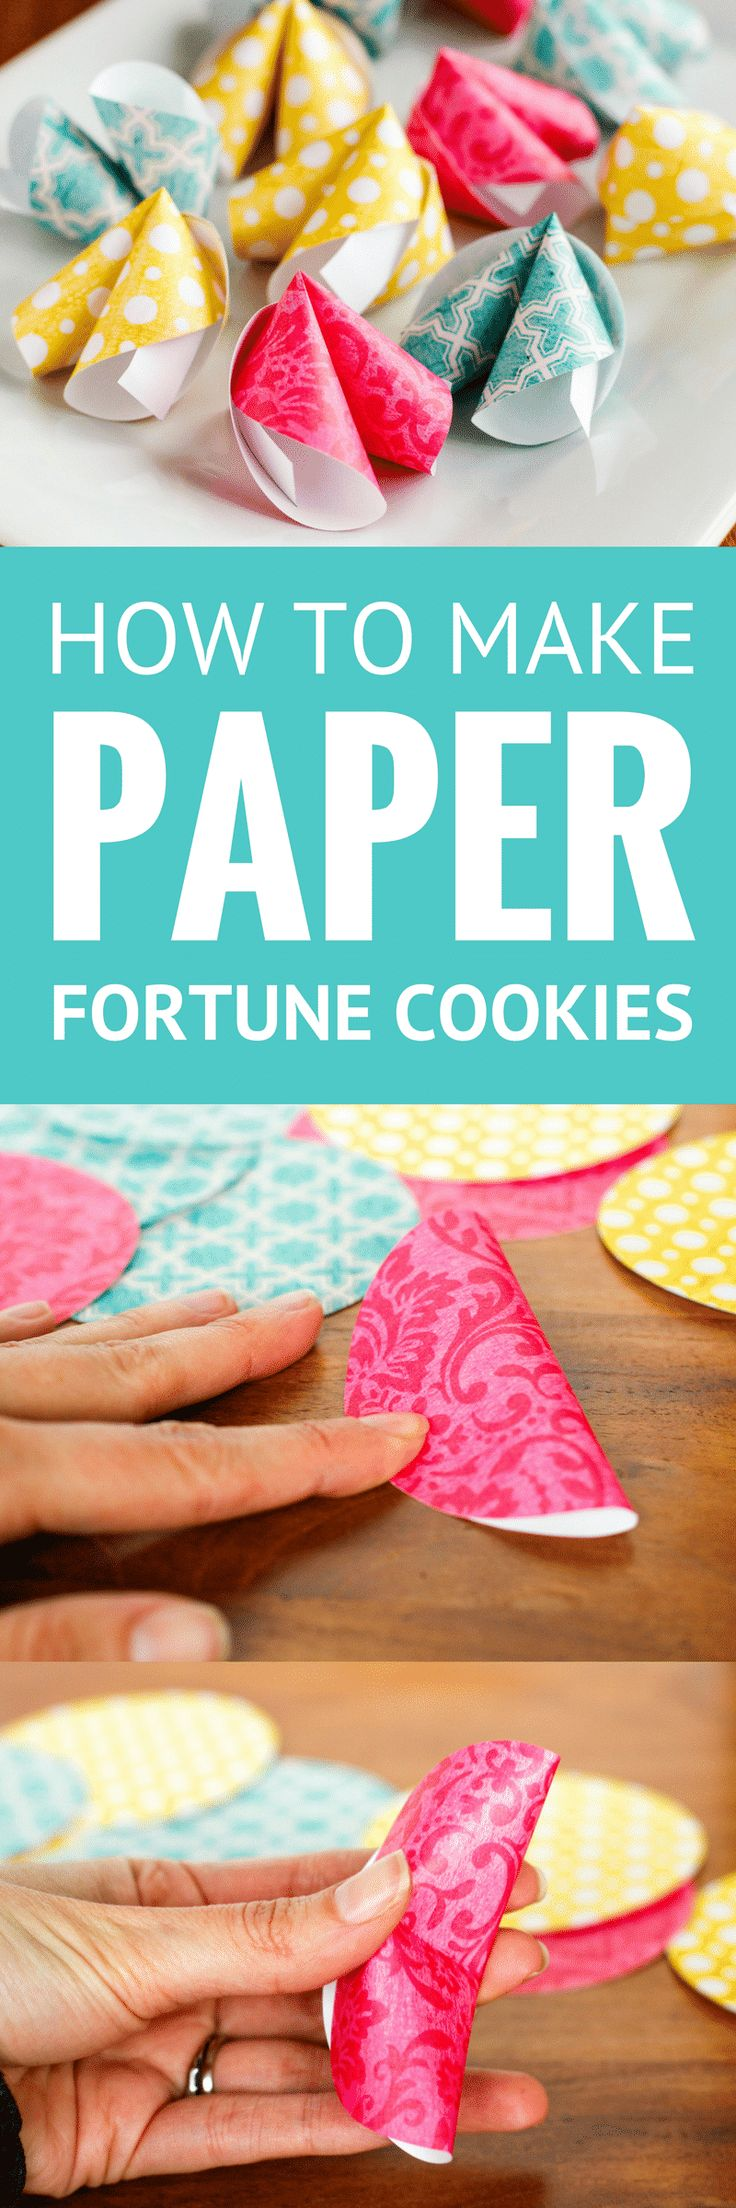 How To Make Paper Fortune Cookies -- Pinned over 110,000 times! These cute DIY paper fortune cookies are super easy to make! Not just for Chinese New Year, they're great for Valentine's Day, wedding favors, birthday parties, and much more... | paper crafts | paper fortune cookie | easy crafts | paper fortune cookie template | fortune cookie origami instructions | find the tutorial on unsophisticook.com